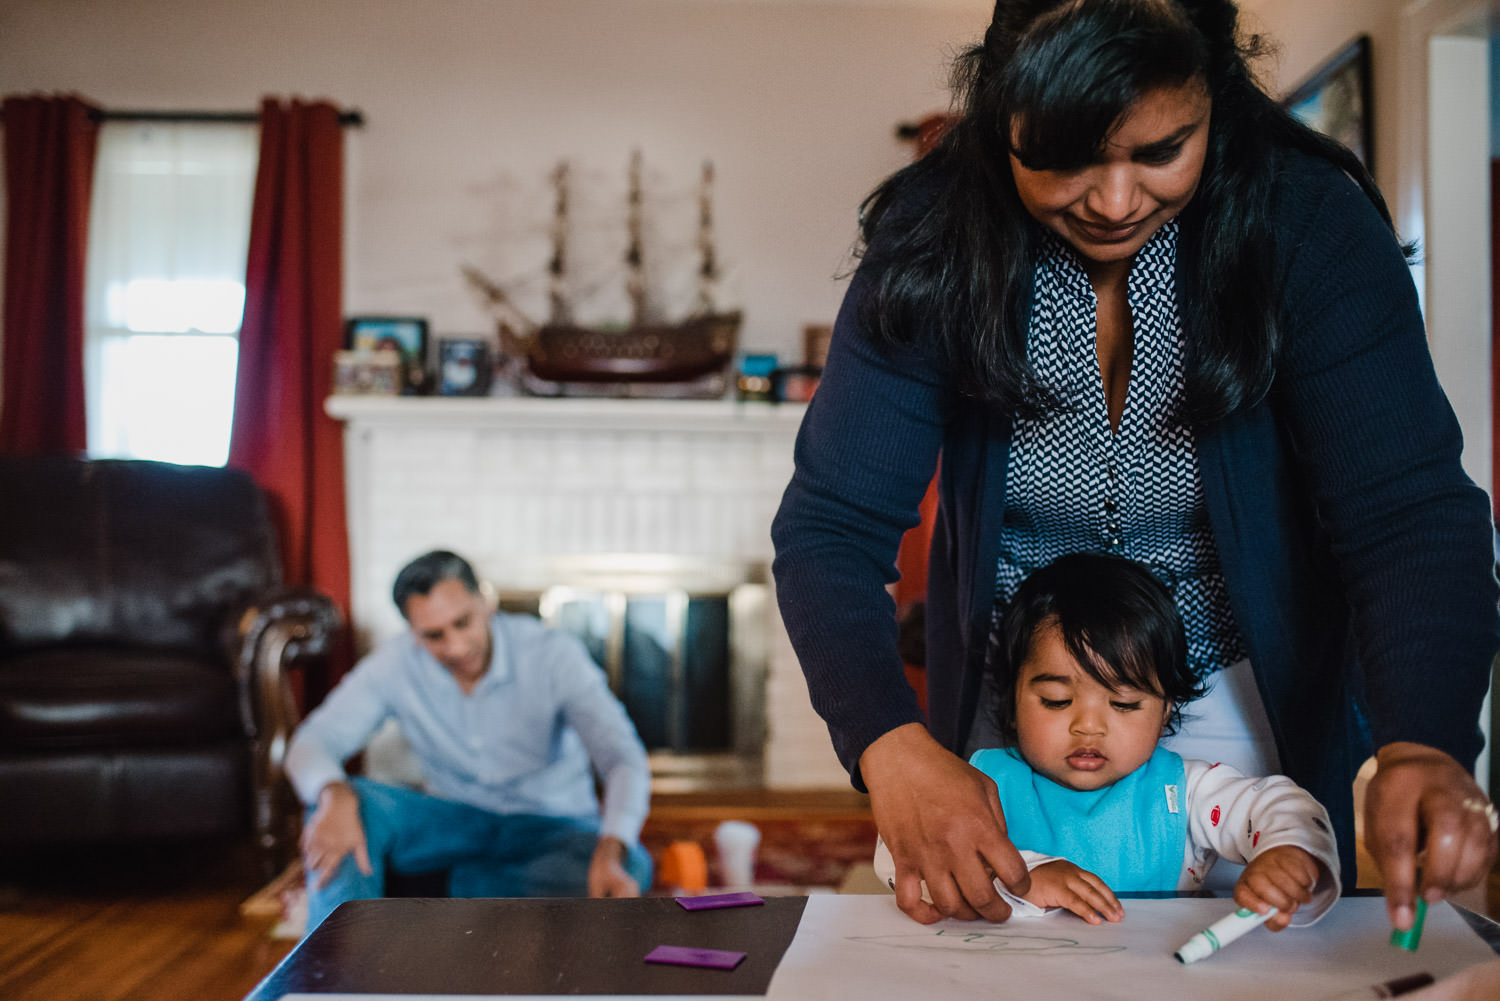 A mother helps her baby son color with markers.